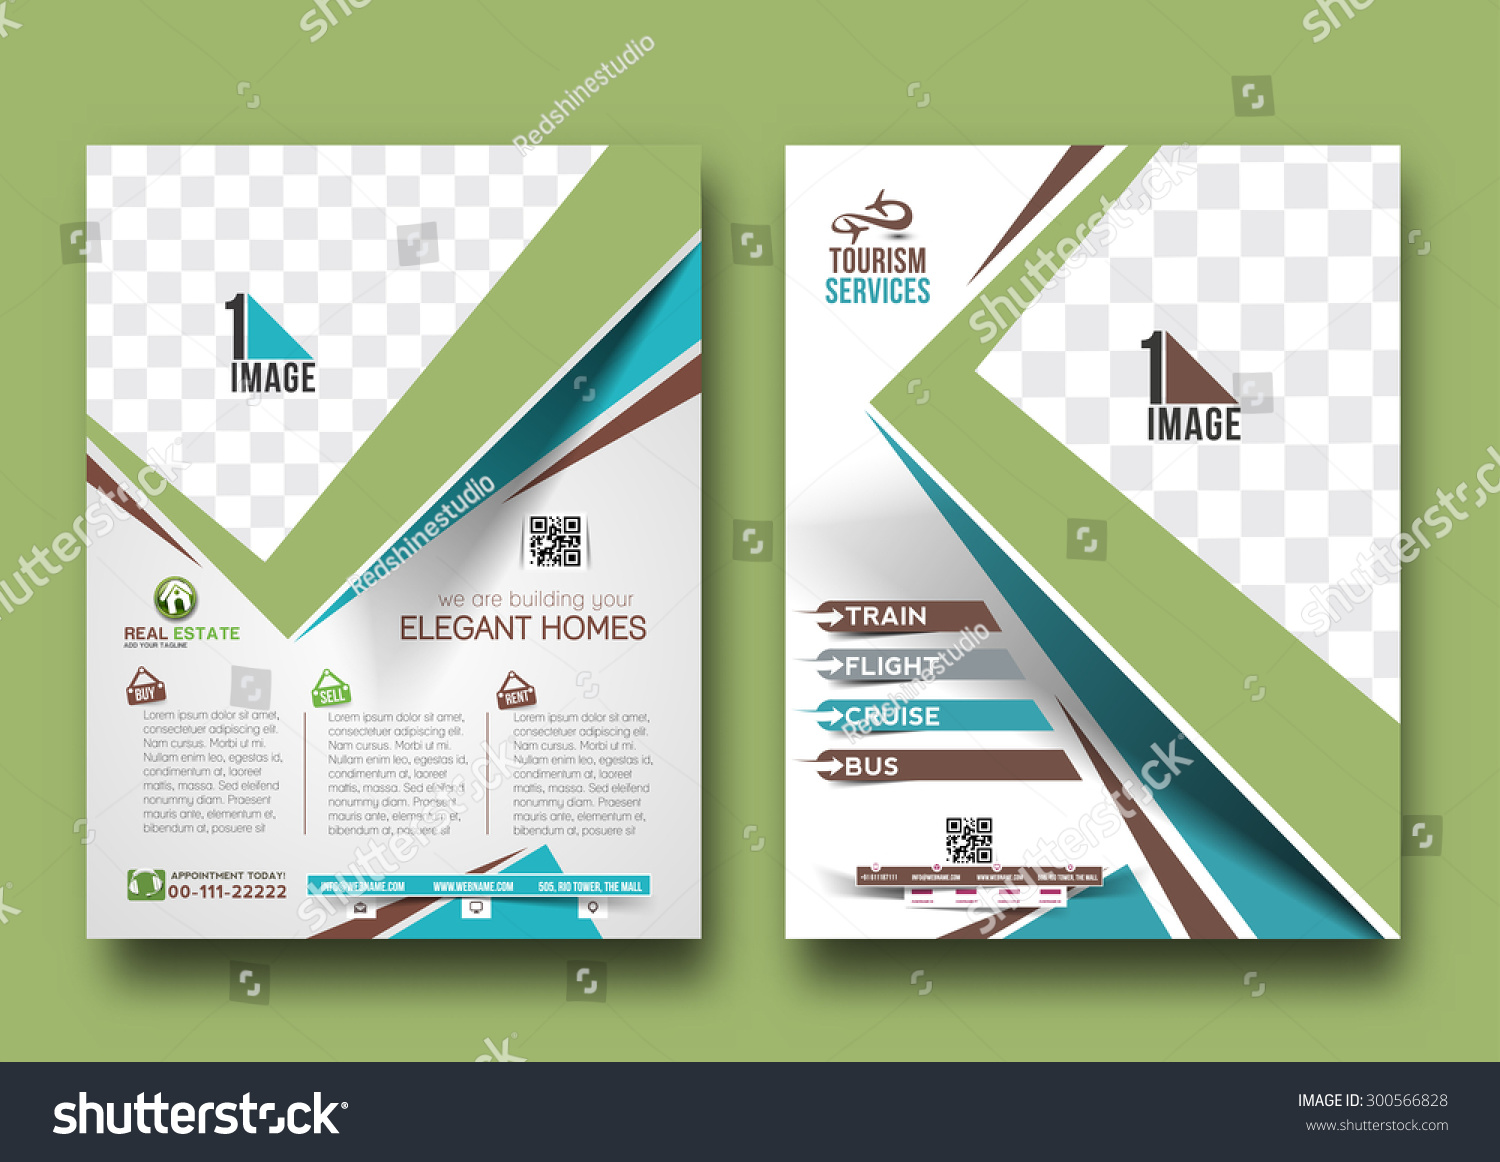 real estate agent flyer poster template stock vector  real estate agent flyer poster template